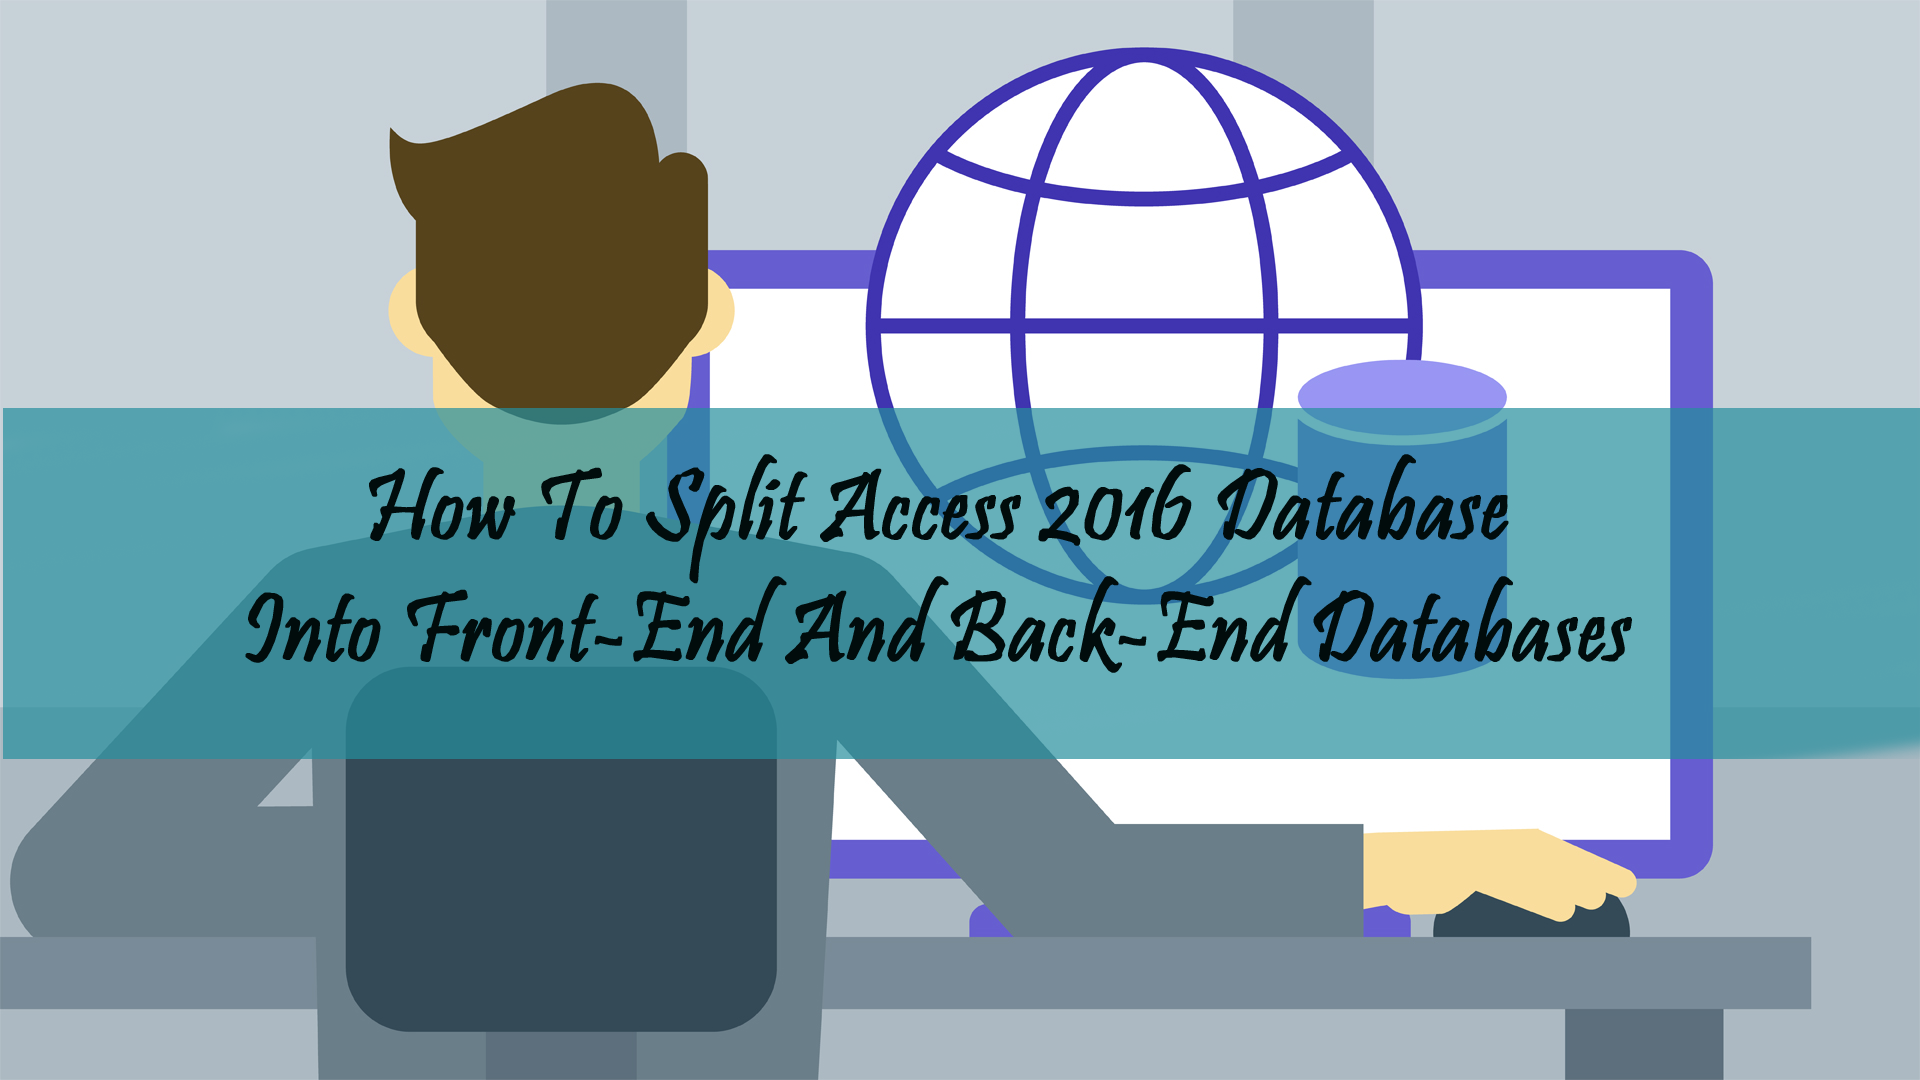 spilt access 2016 database